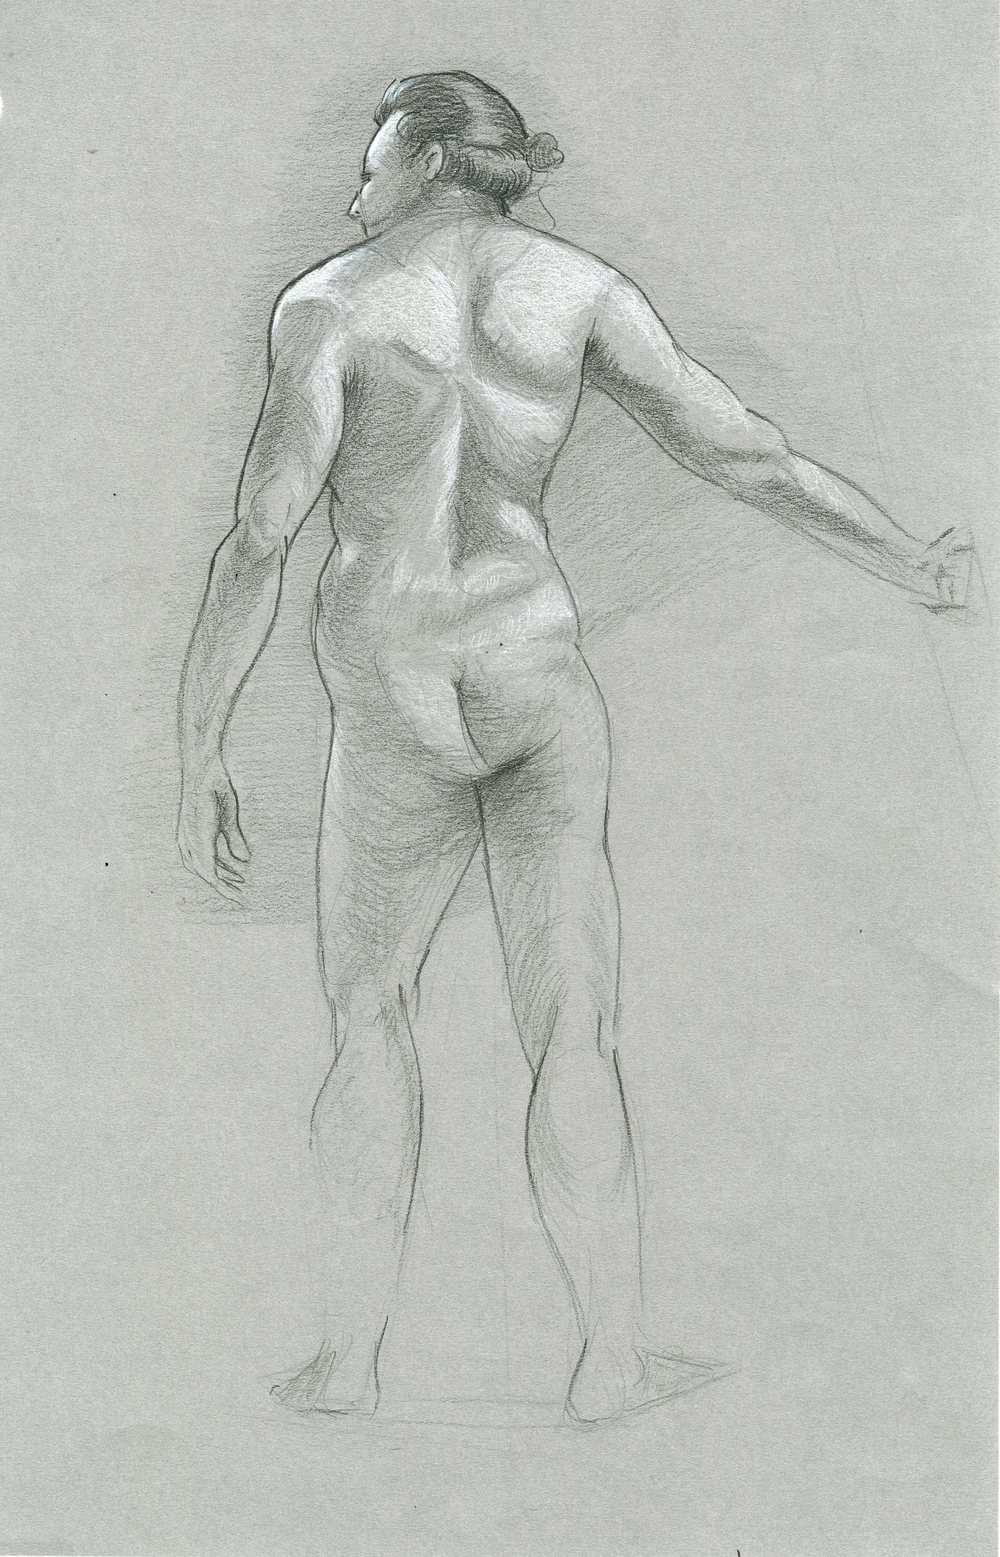 lifeDrawing_003.jpg